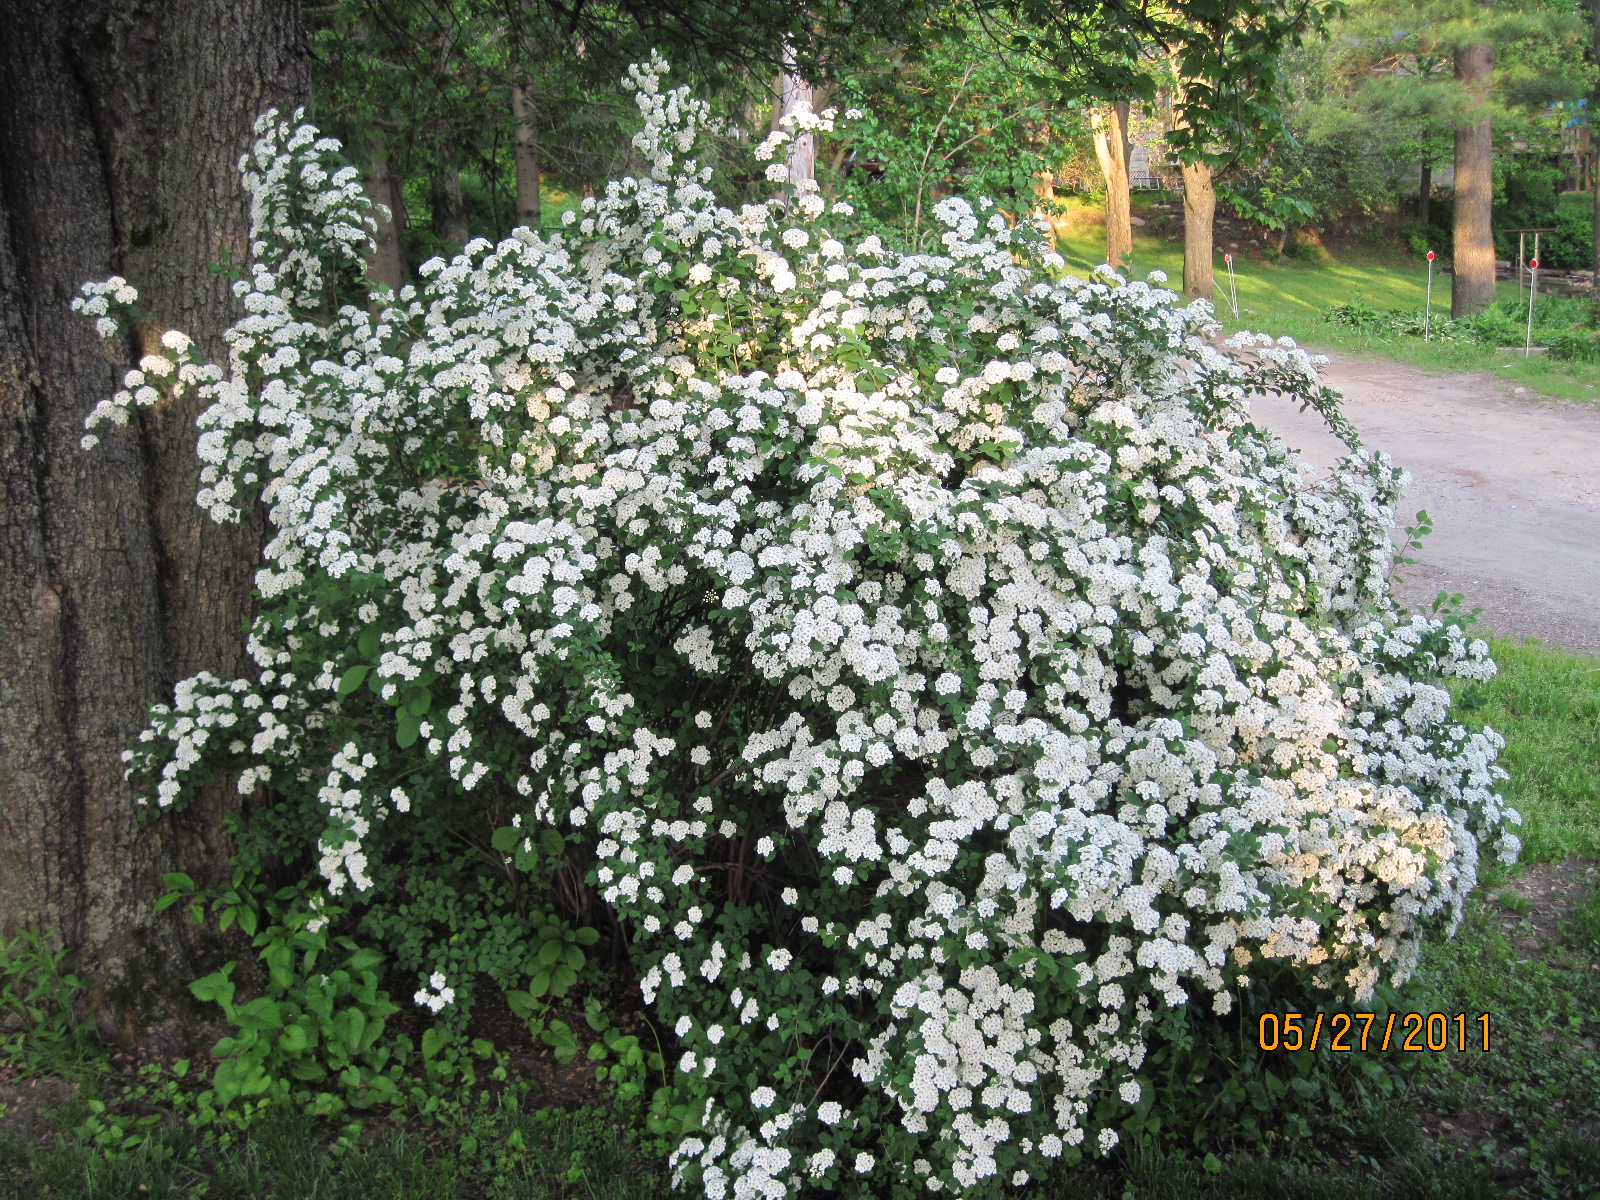 Thorn bush with small white flowers images flower decoration ideas thorn bush with small white flowers choice image flower decoration thorn bush with small white flowers mightylinksfo